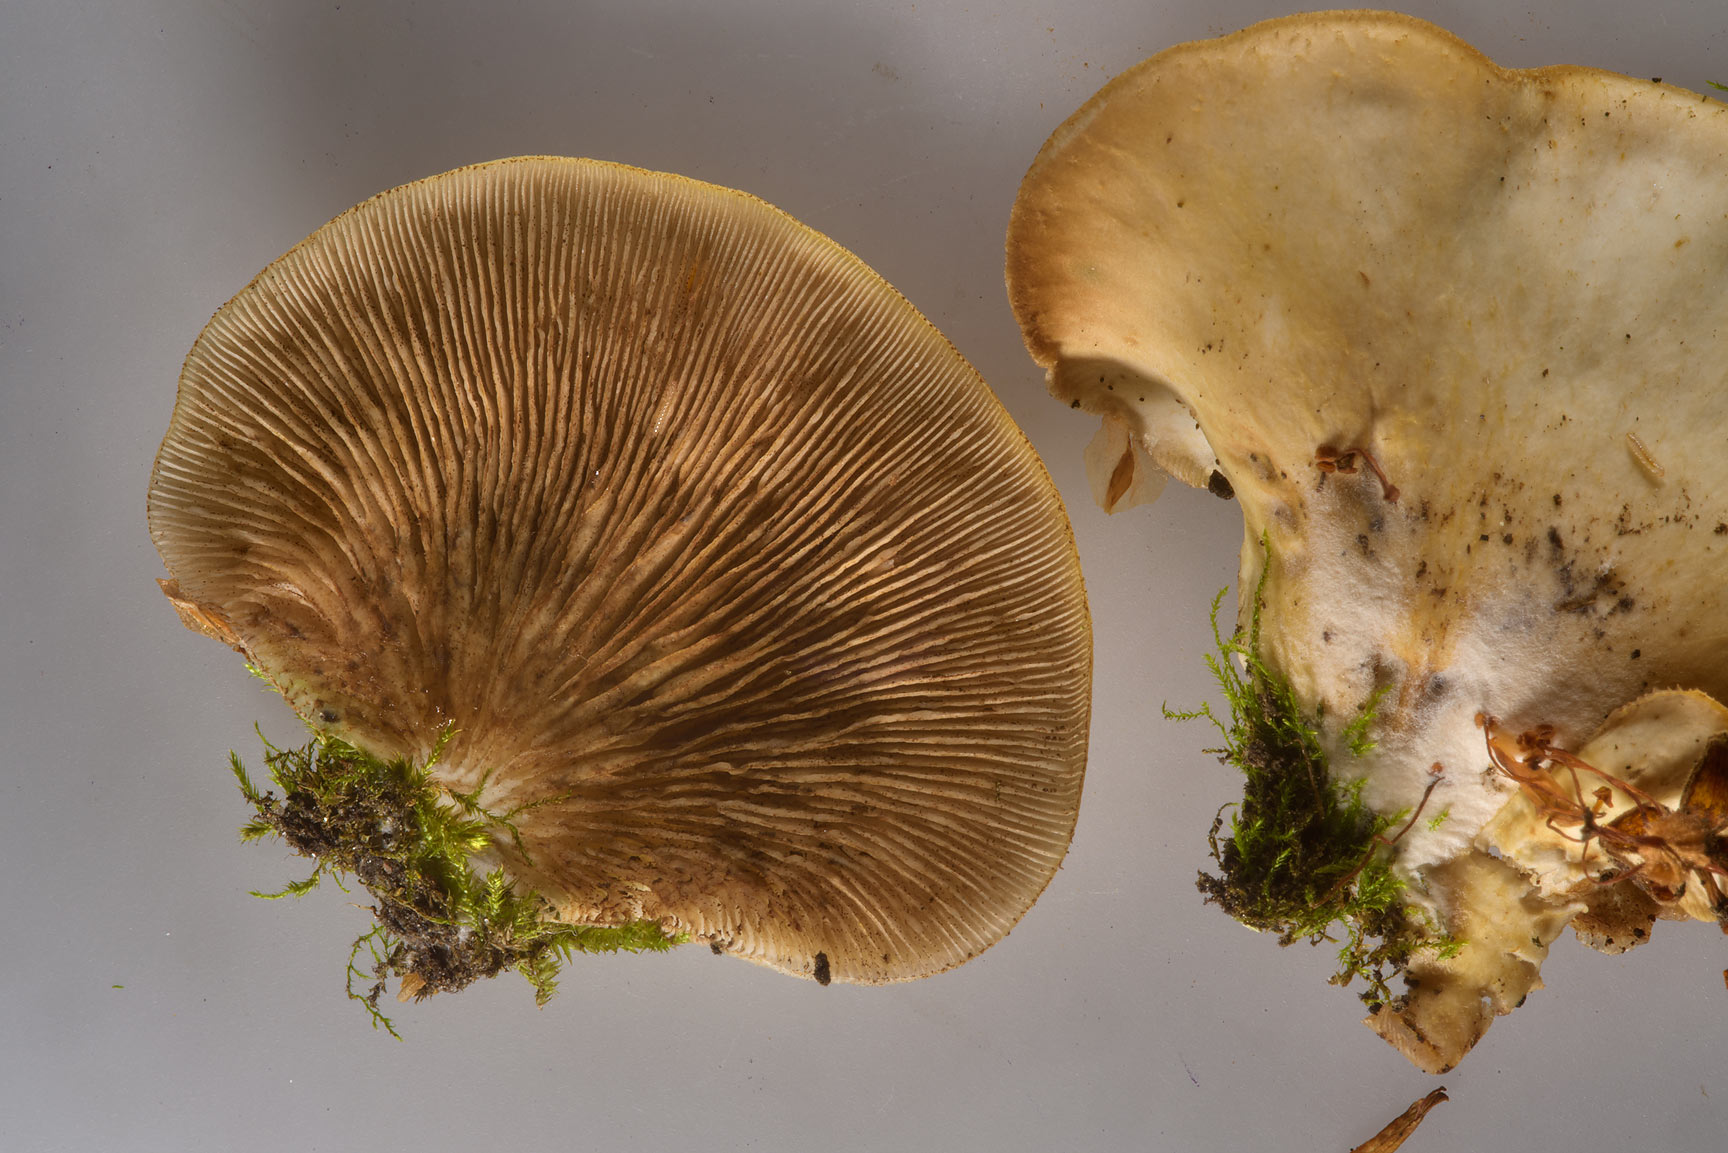 Flat oysterling mushrooms (Crepidotus applanatus...Pavlovsk near St.Petersburg, Russia